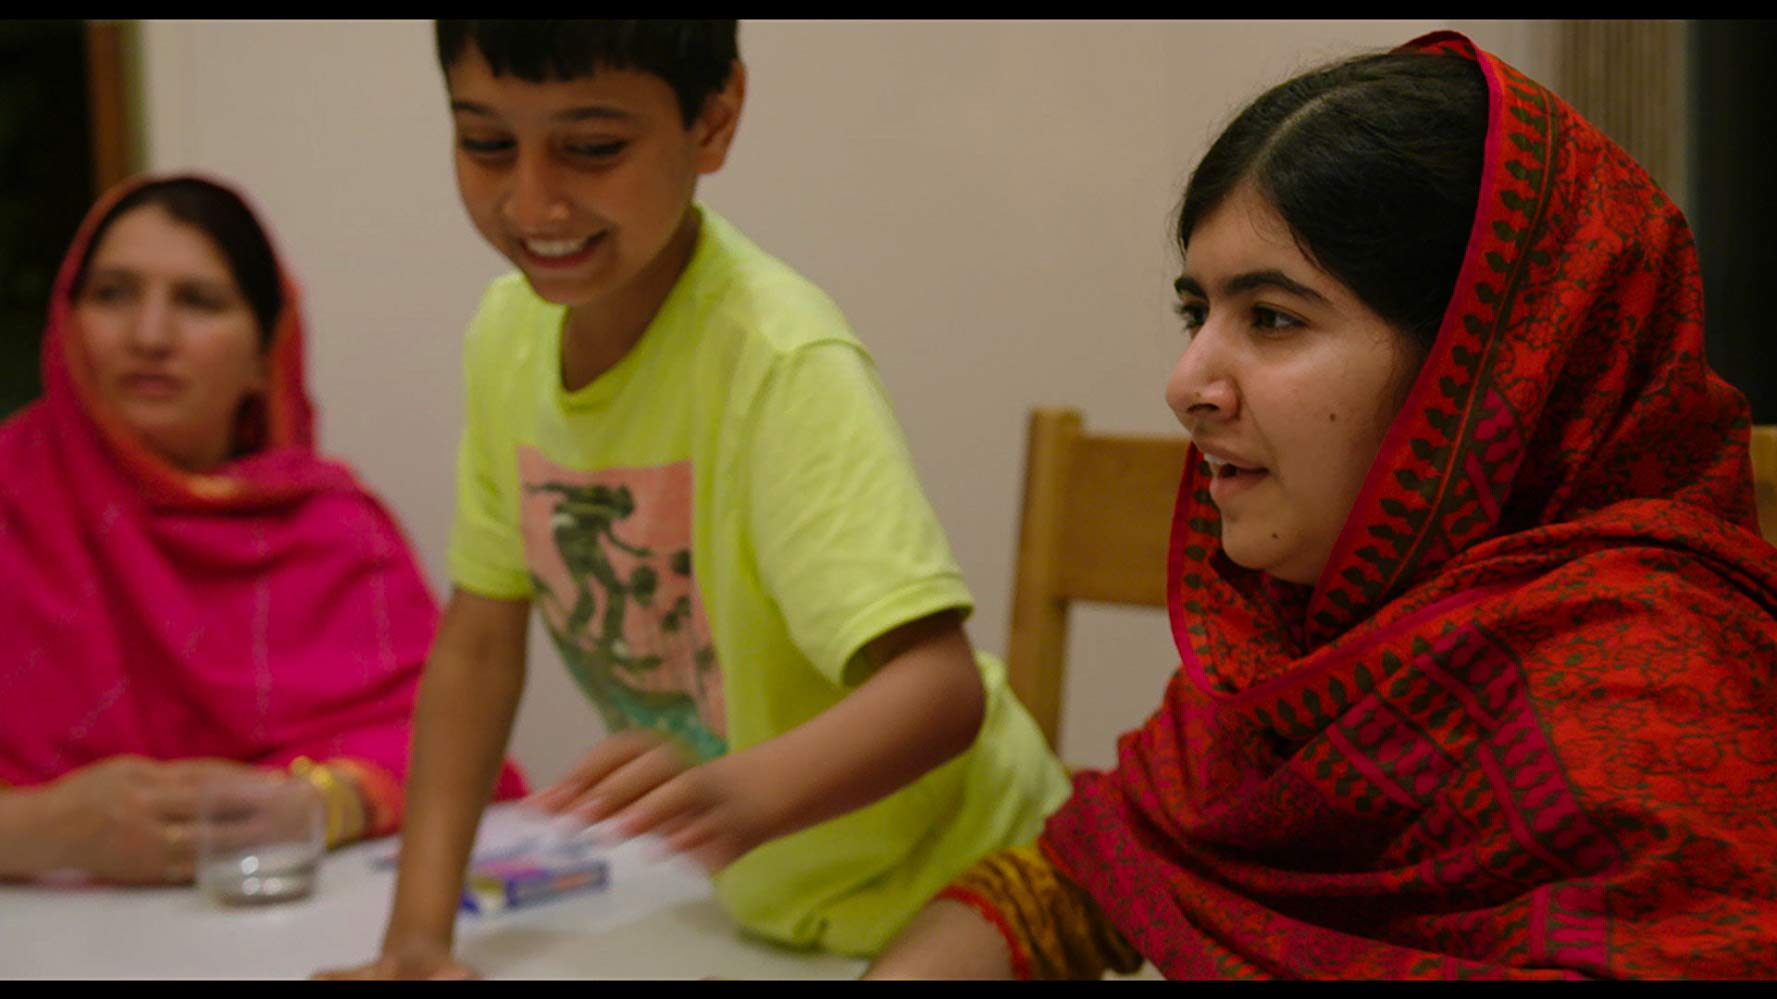 Malala Yousafzai. In the background, a young boy smiles.